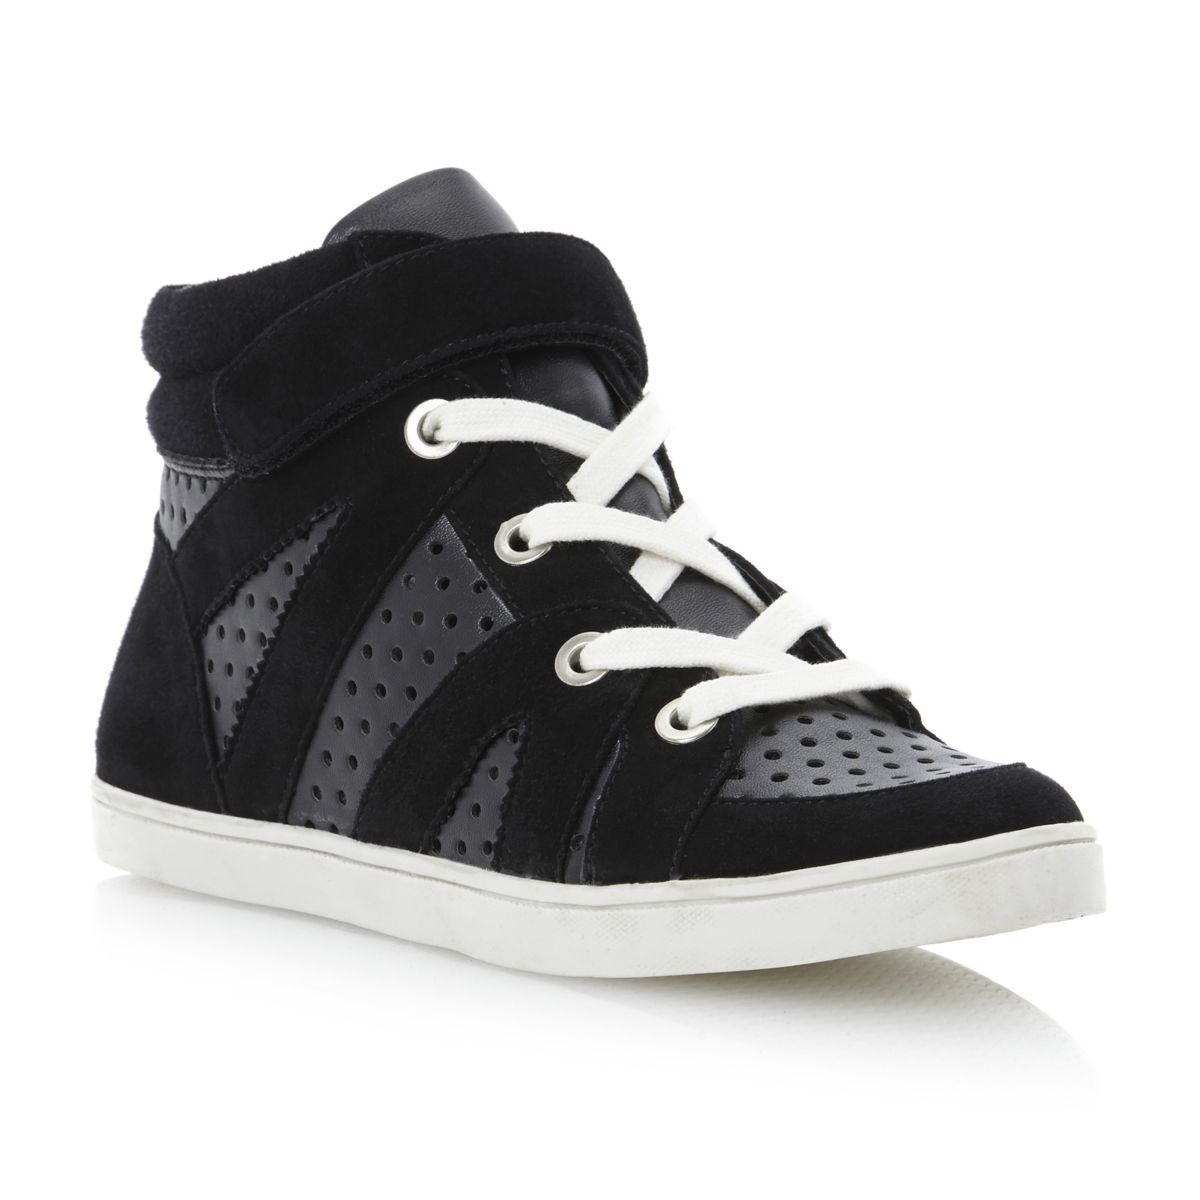 Shop for women's high top trainers at qrqceh.tk Next day delivery and free returns available. Buy women's high top trainers online now!